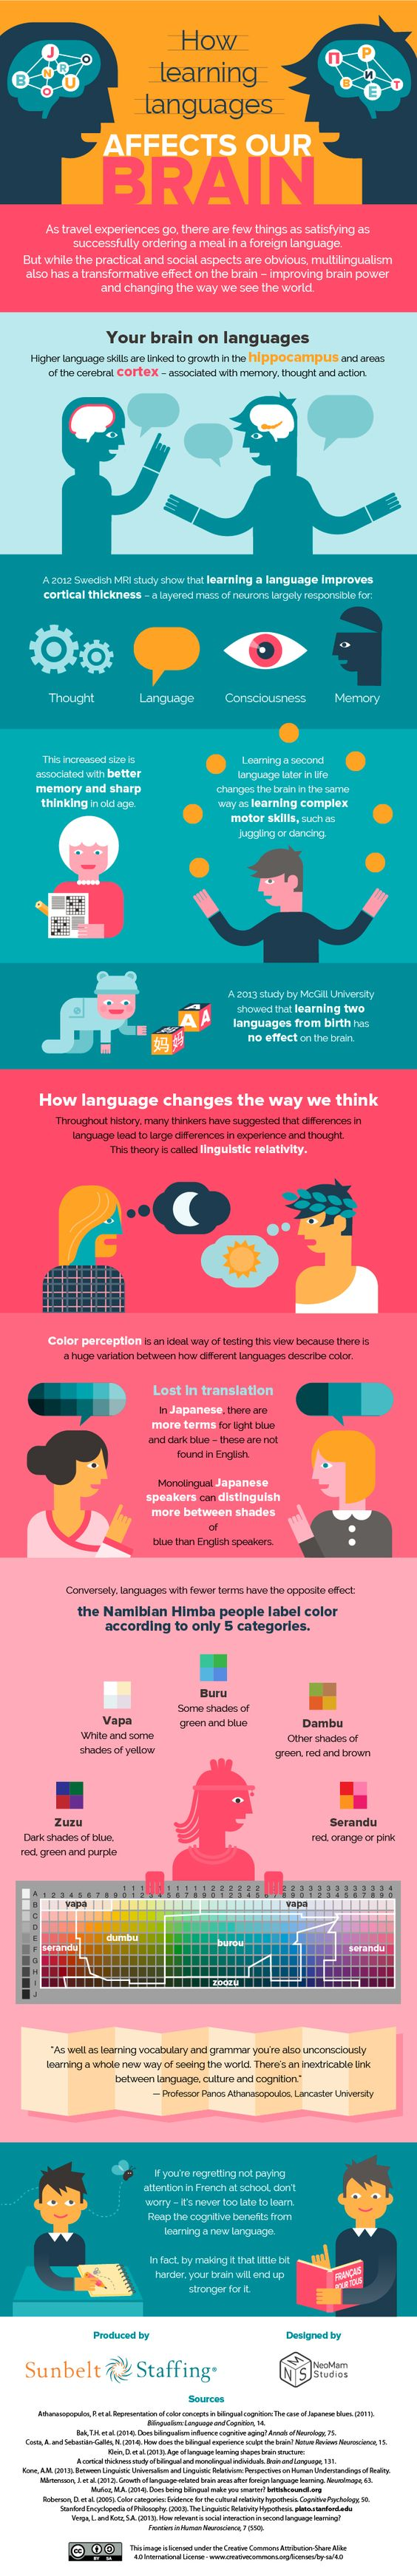 How learning languages affects our brain #infographic #Language #Brain